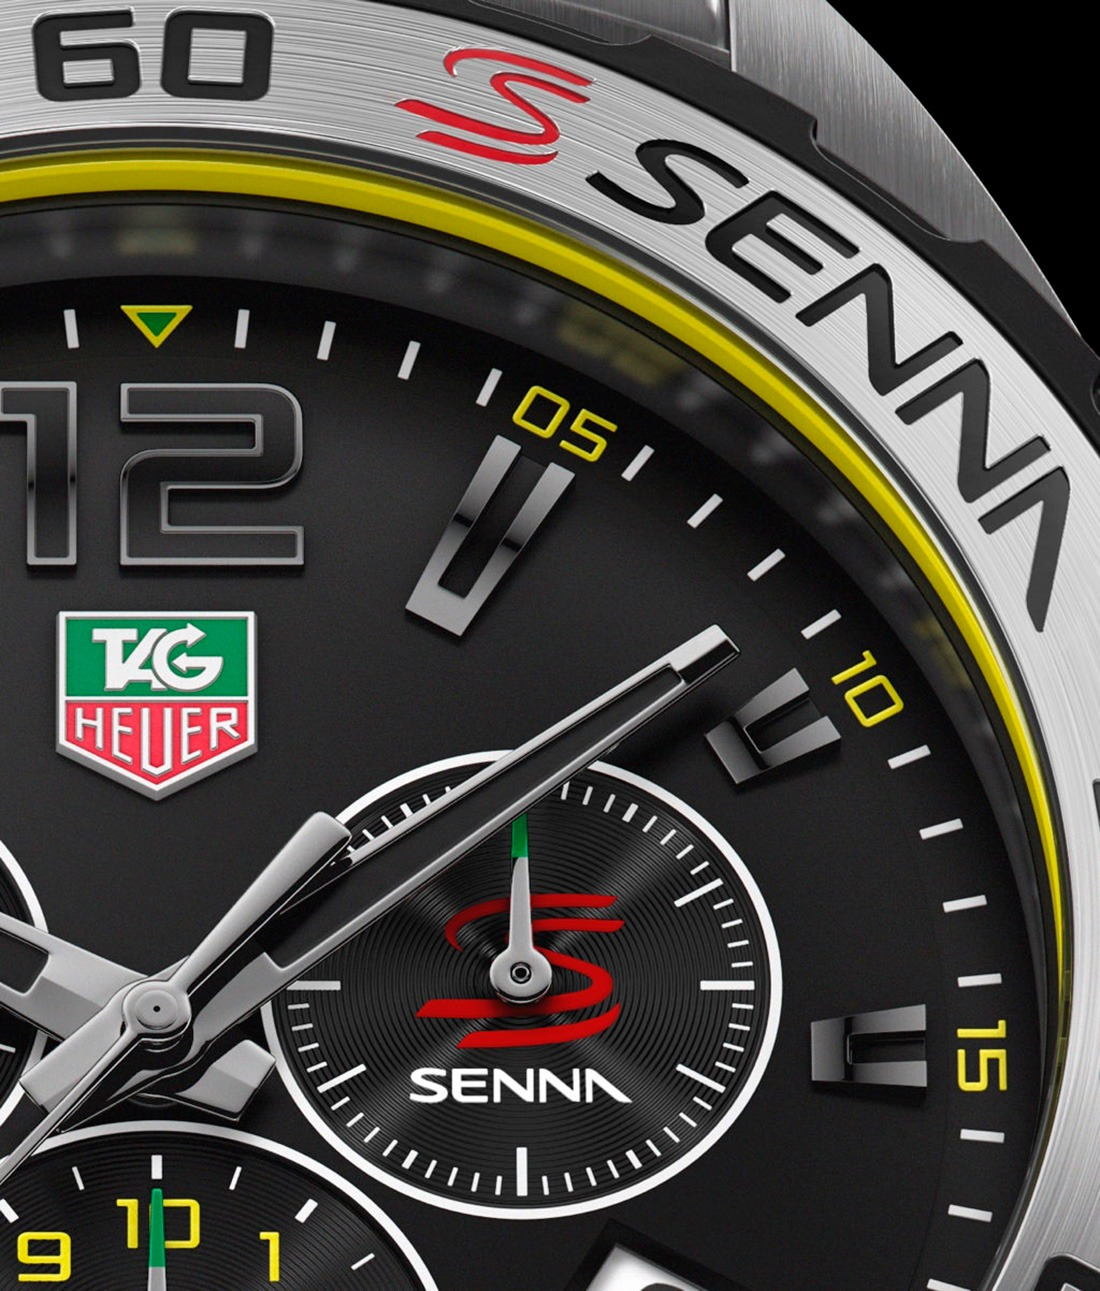 tag heuer formula 1 chronograph senna edition whittles. Black Bedroom Furniture Sets. Home Design Ideas